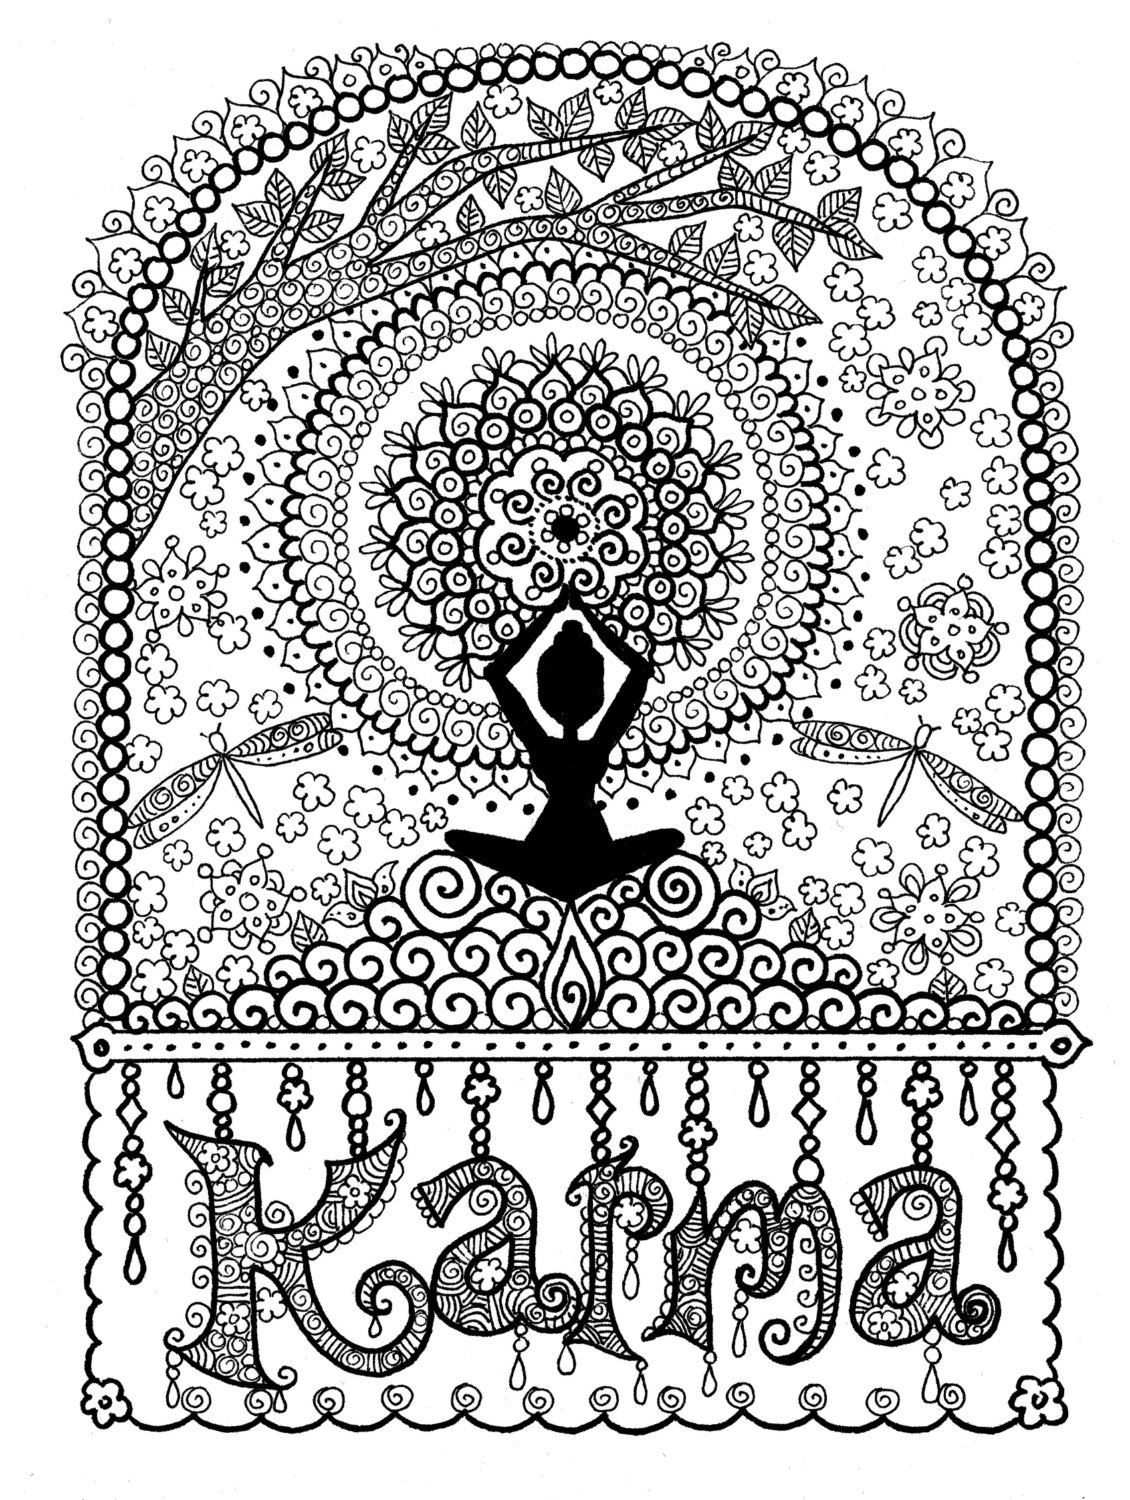 Karma Coloring Page Digital Coloring For Adults Instant Download